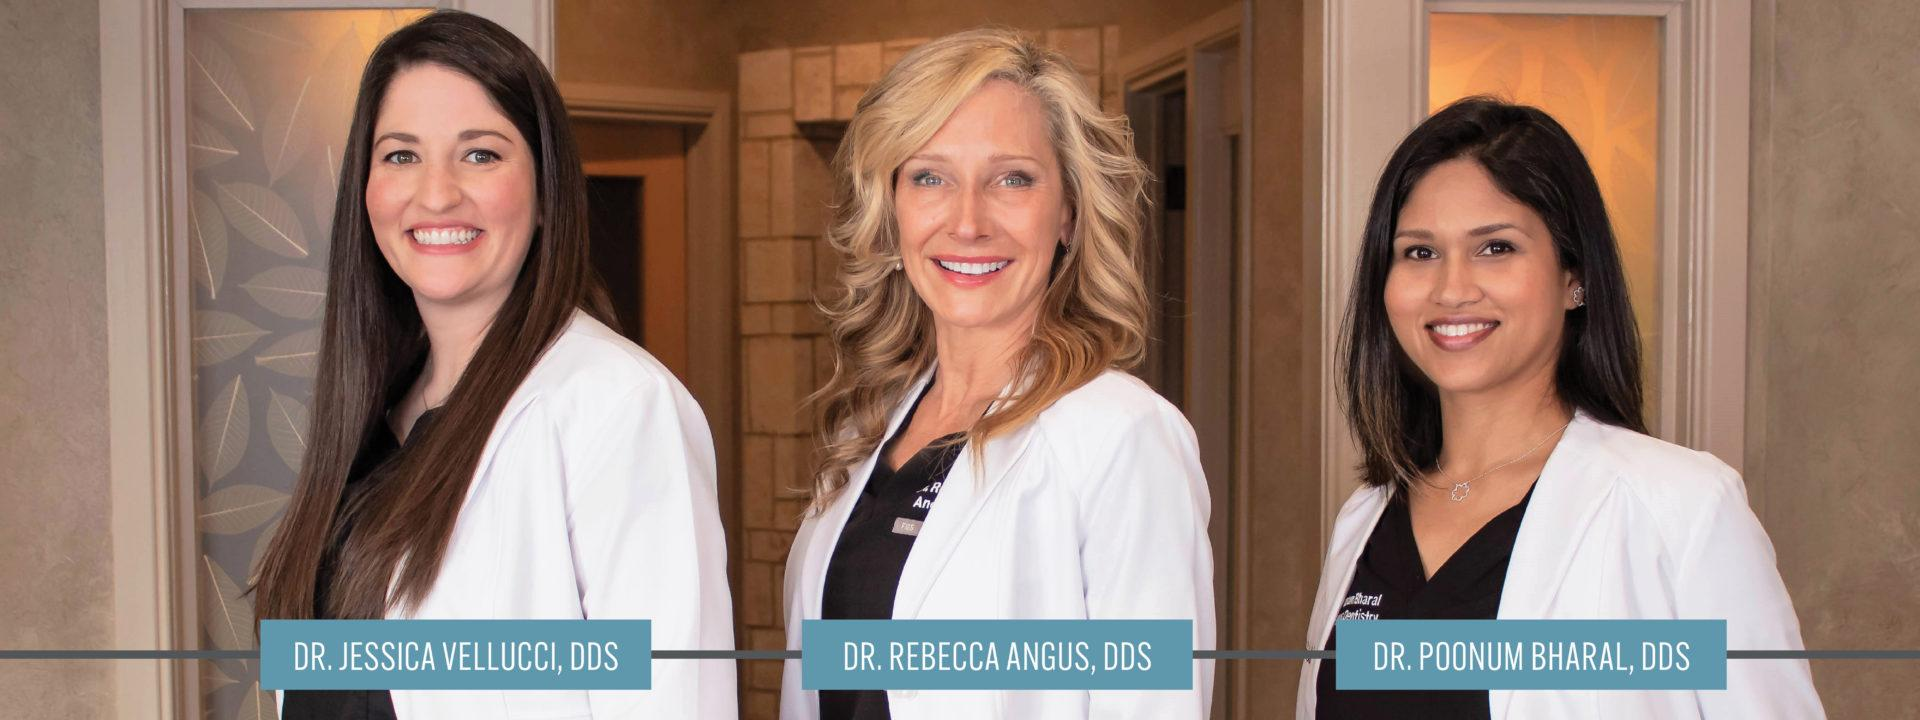 Dr. Jessica Vellucci, Dr. Rebecca Angus, Dr. Poonum Bharal